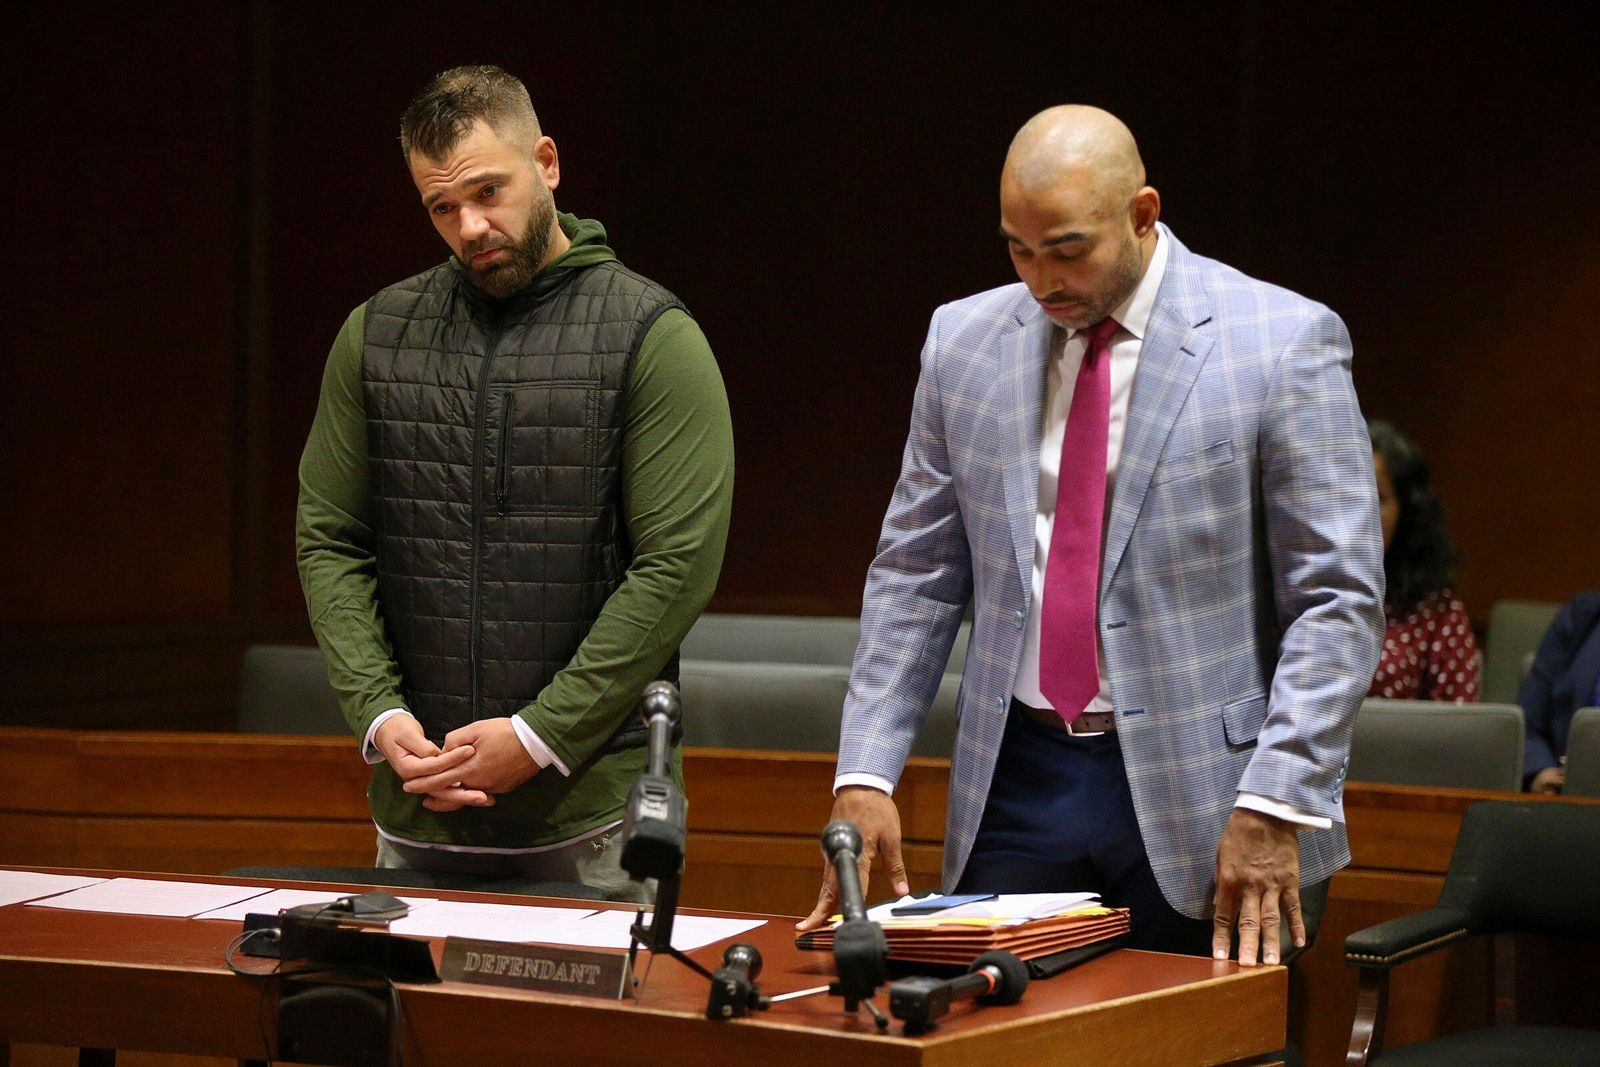 Mark D'Amico, left, stands with his lawyer, Mark Davis, as he pleads guilty to one count of misappropriating entrusted funds in Burlington County Superior Court in Mount Holly, N.J., on Friday, Dec. 6, 2019.{ } (Tim Tai/The Philadelphia Inquirer via AP)